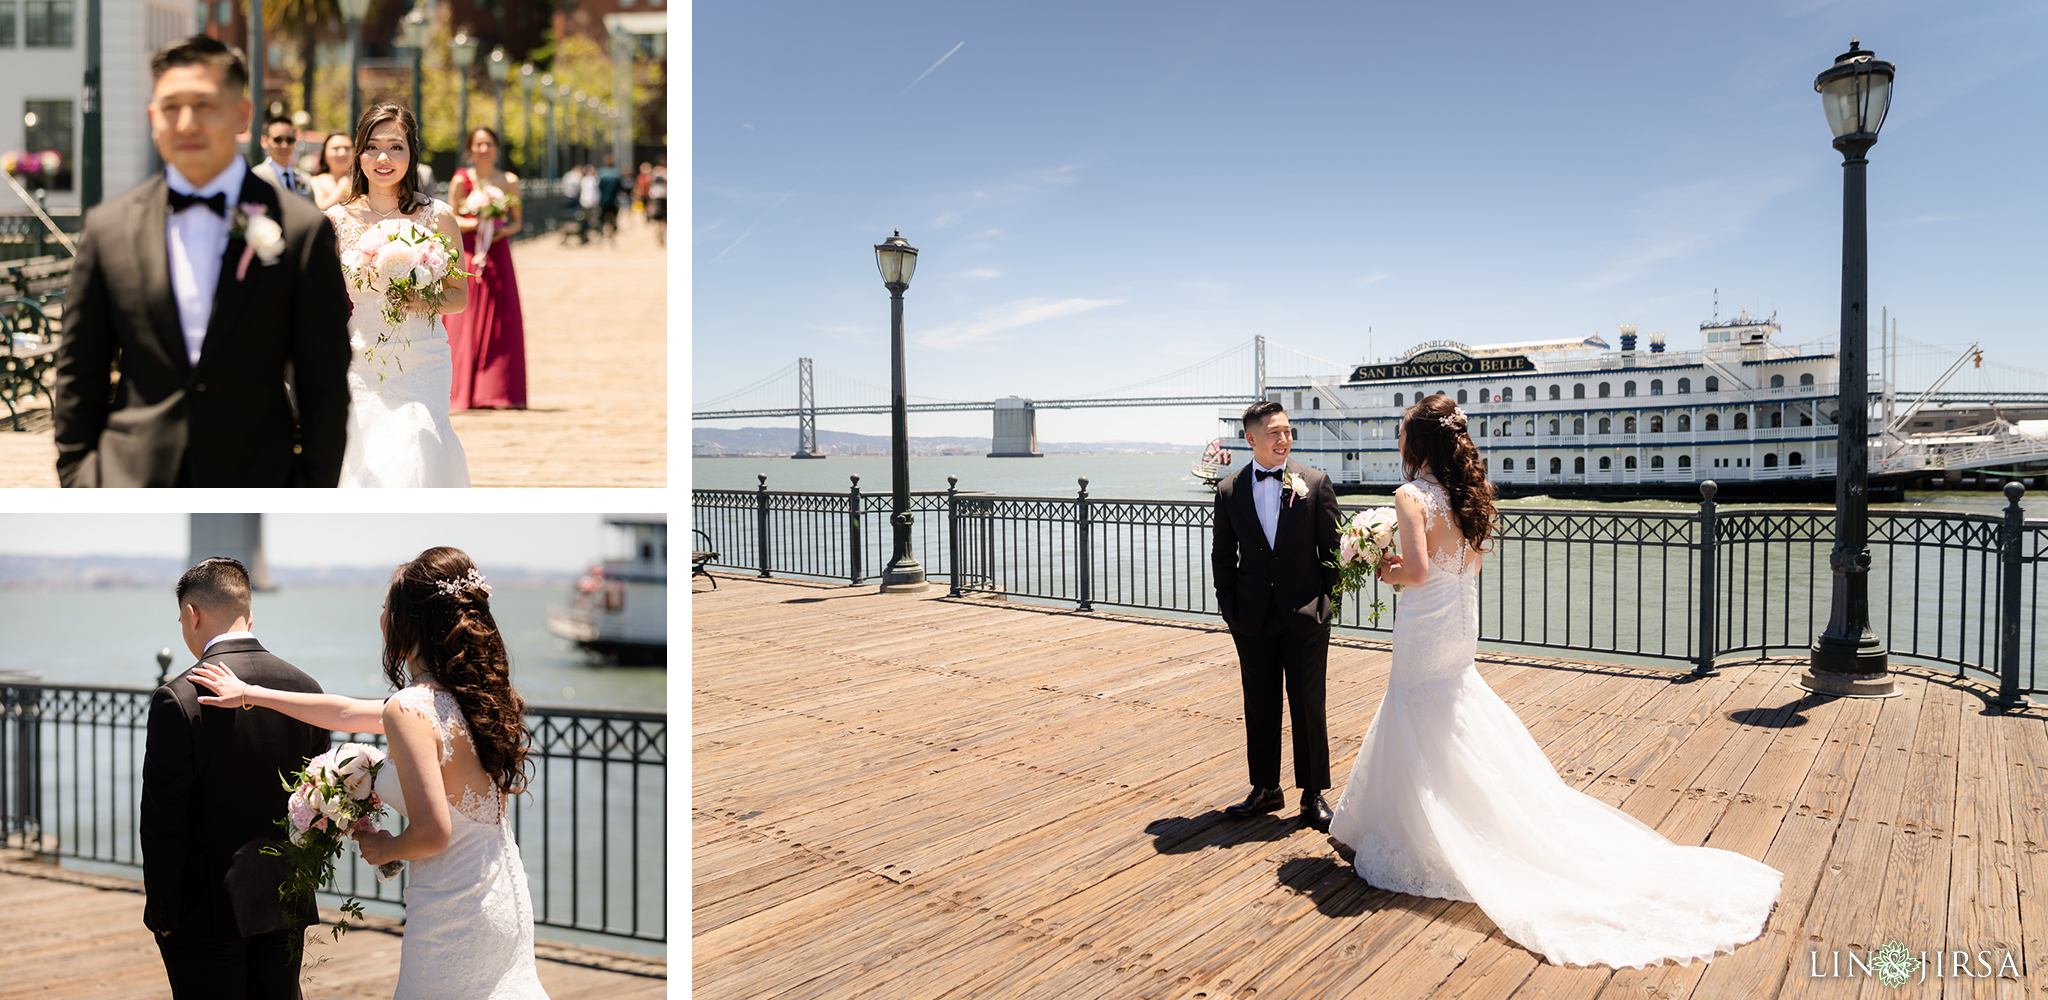 09 Bently Reserve San Francisco Destination Wedding Photographer